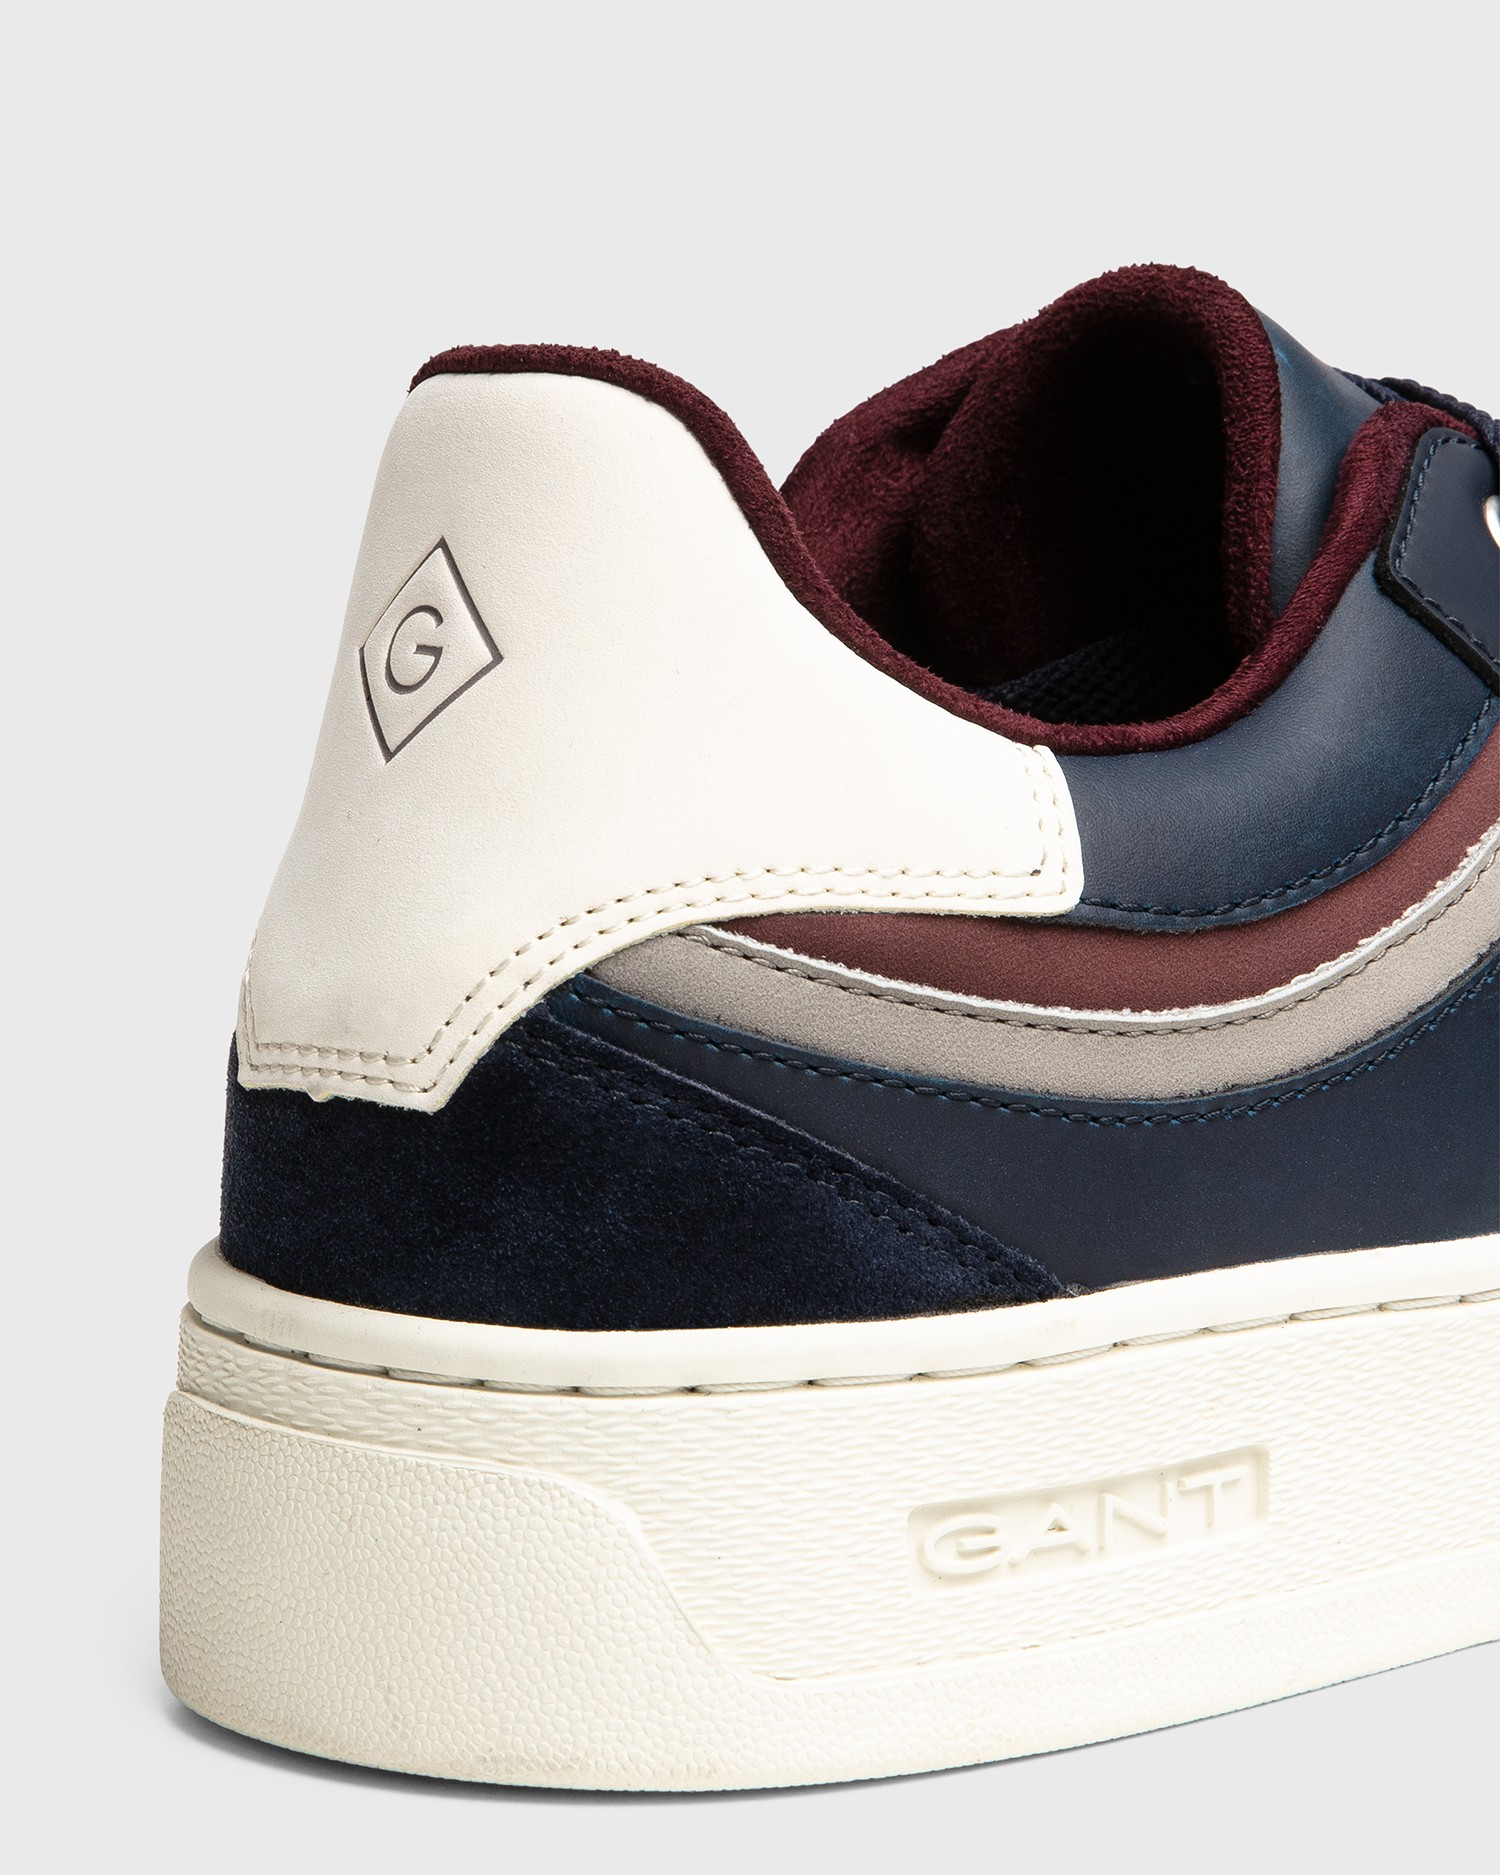 GANT Men's Detroit Shoes - 19631885